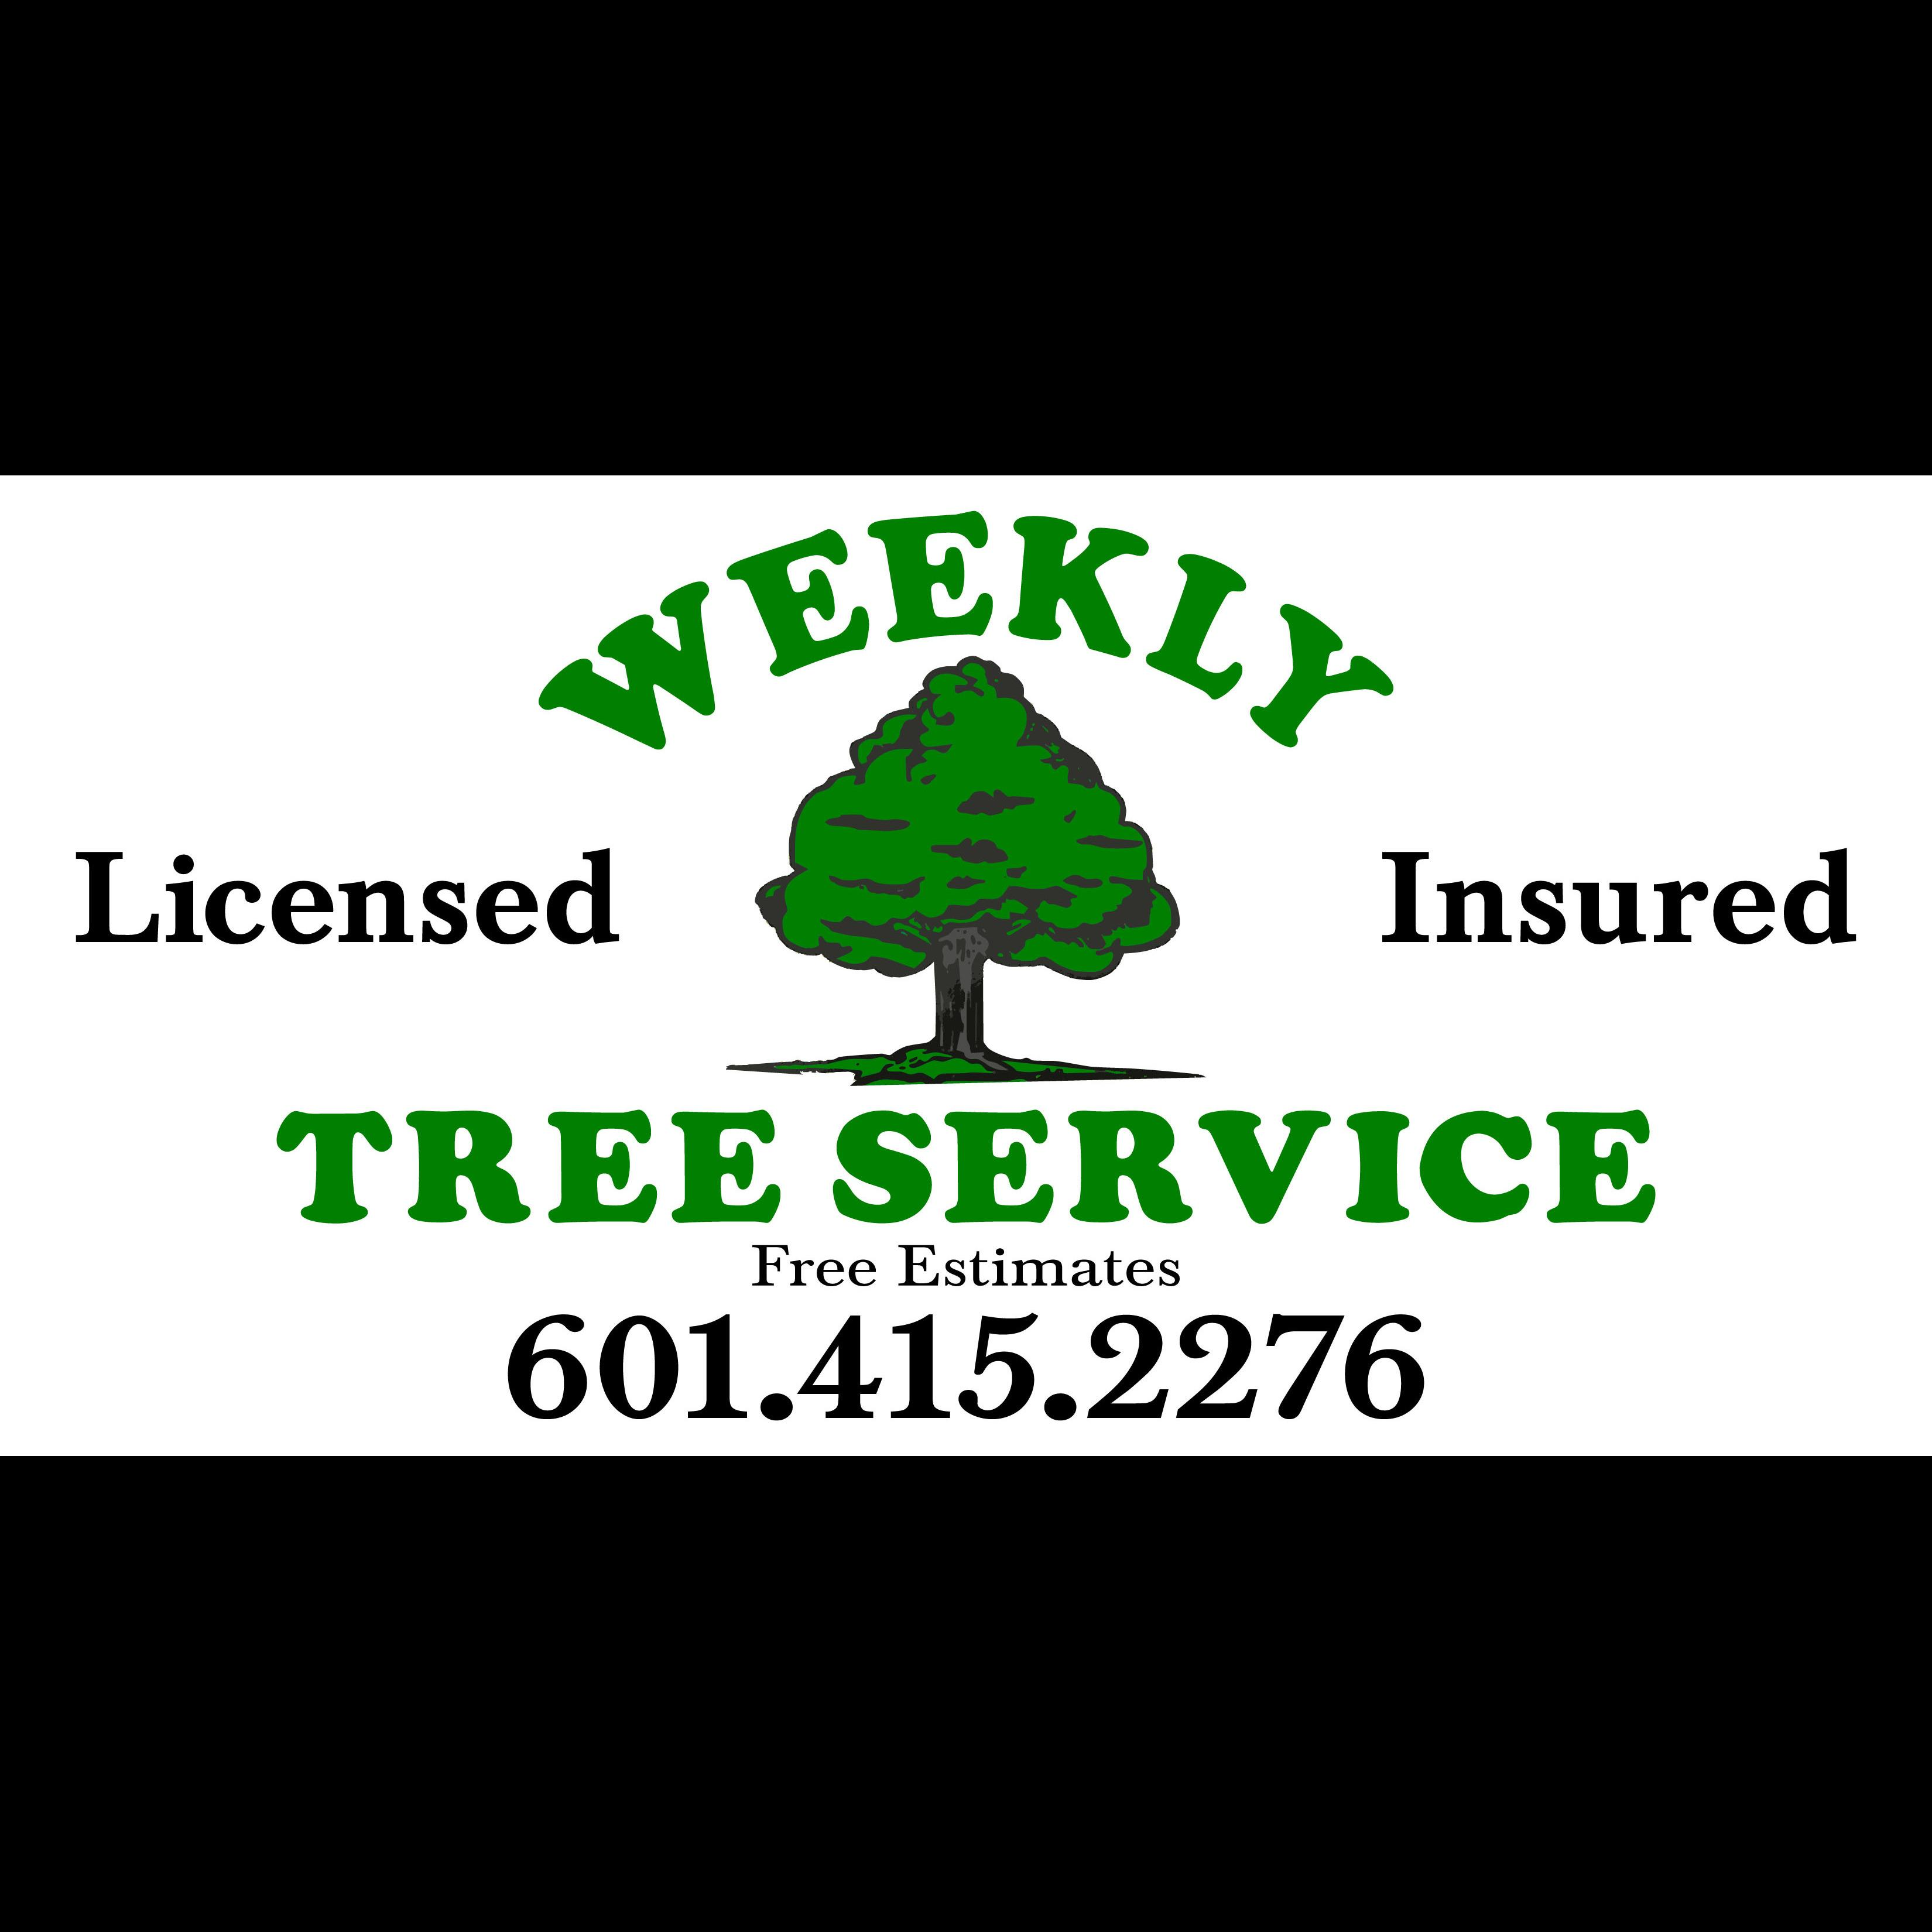 Weekly Tree Svc